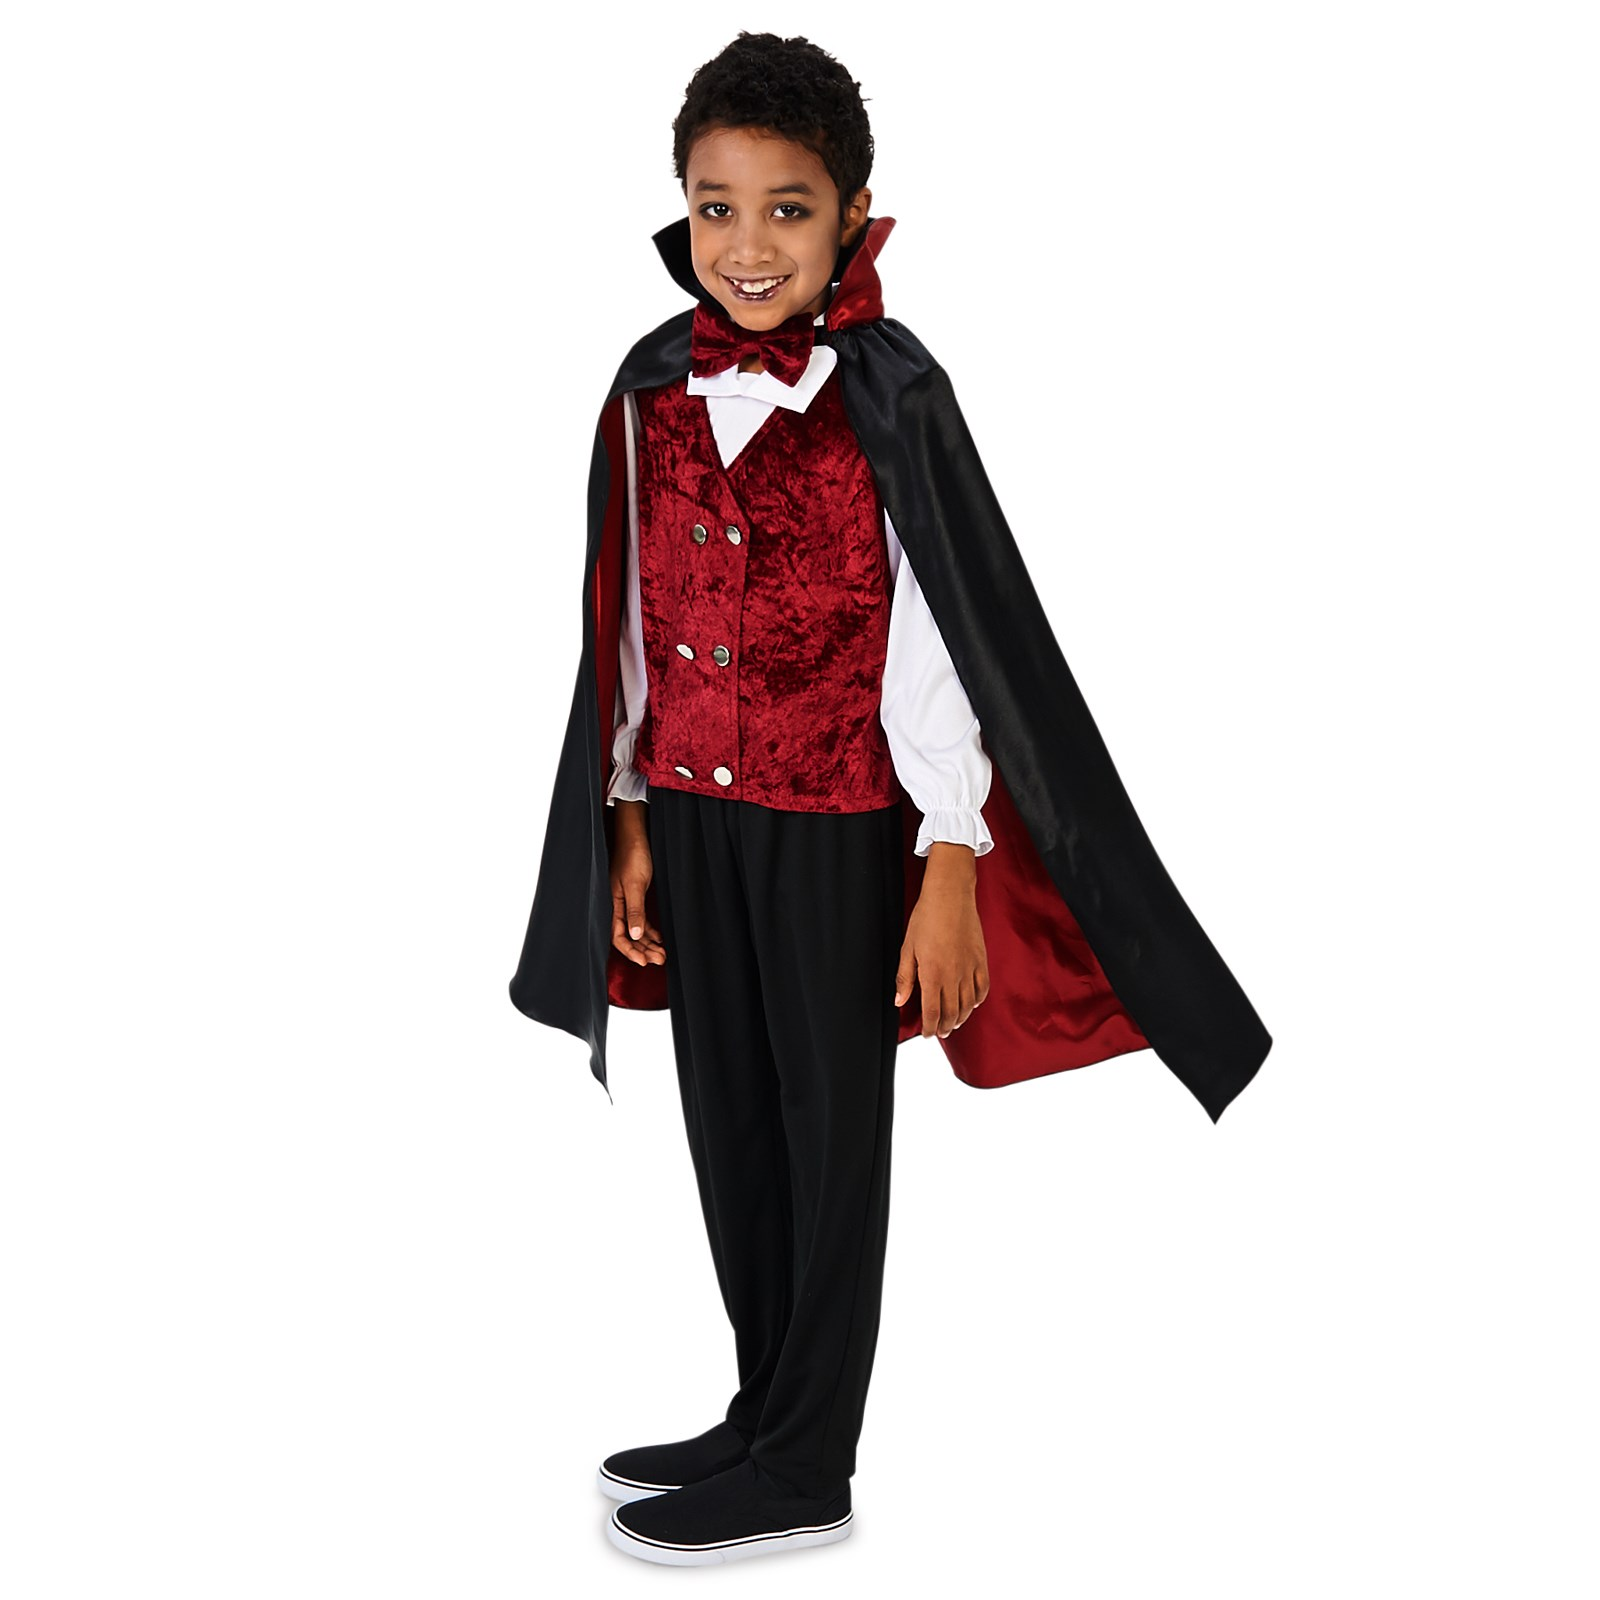 transylvanian vampire child costume. Black Bedroom Furniture Sets. Home Design Ideas